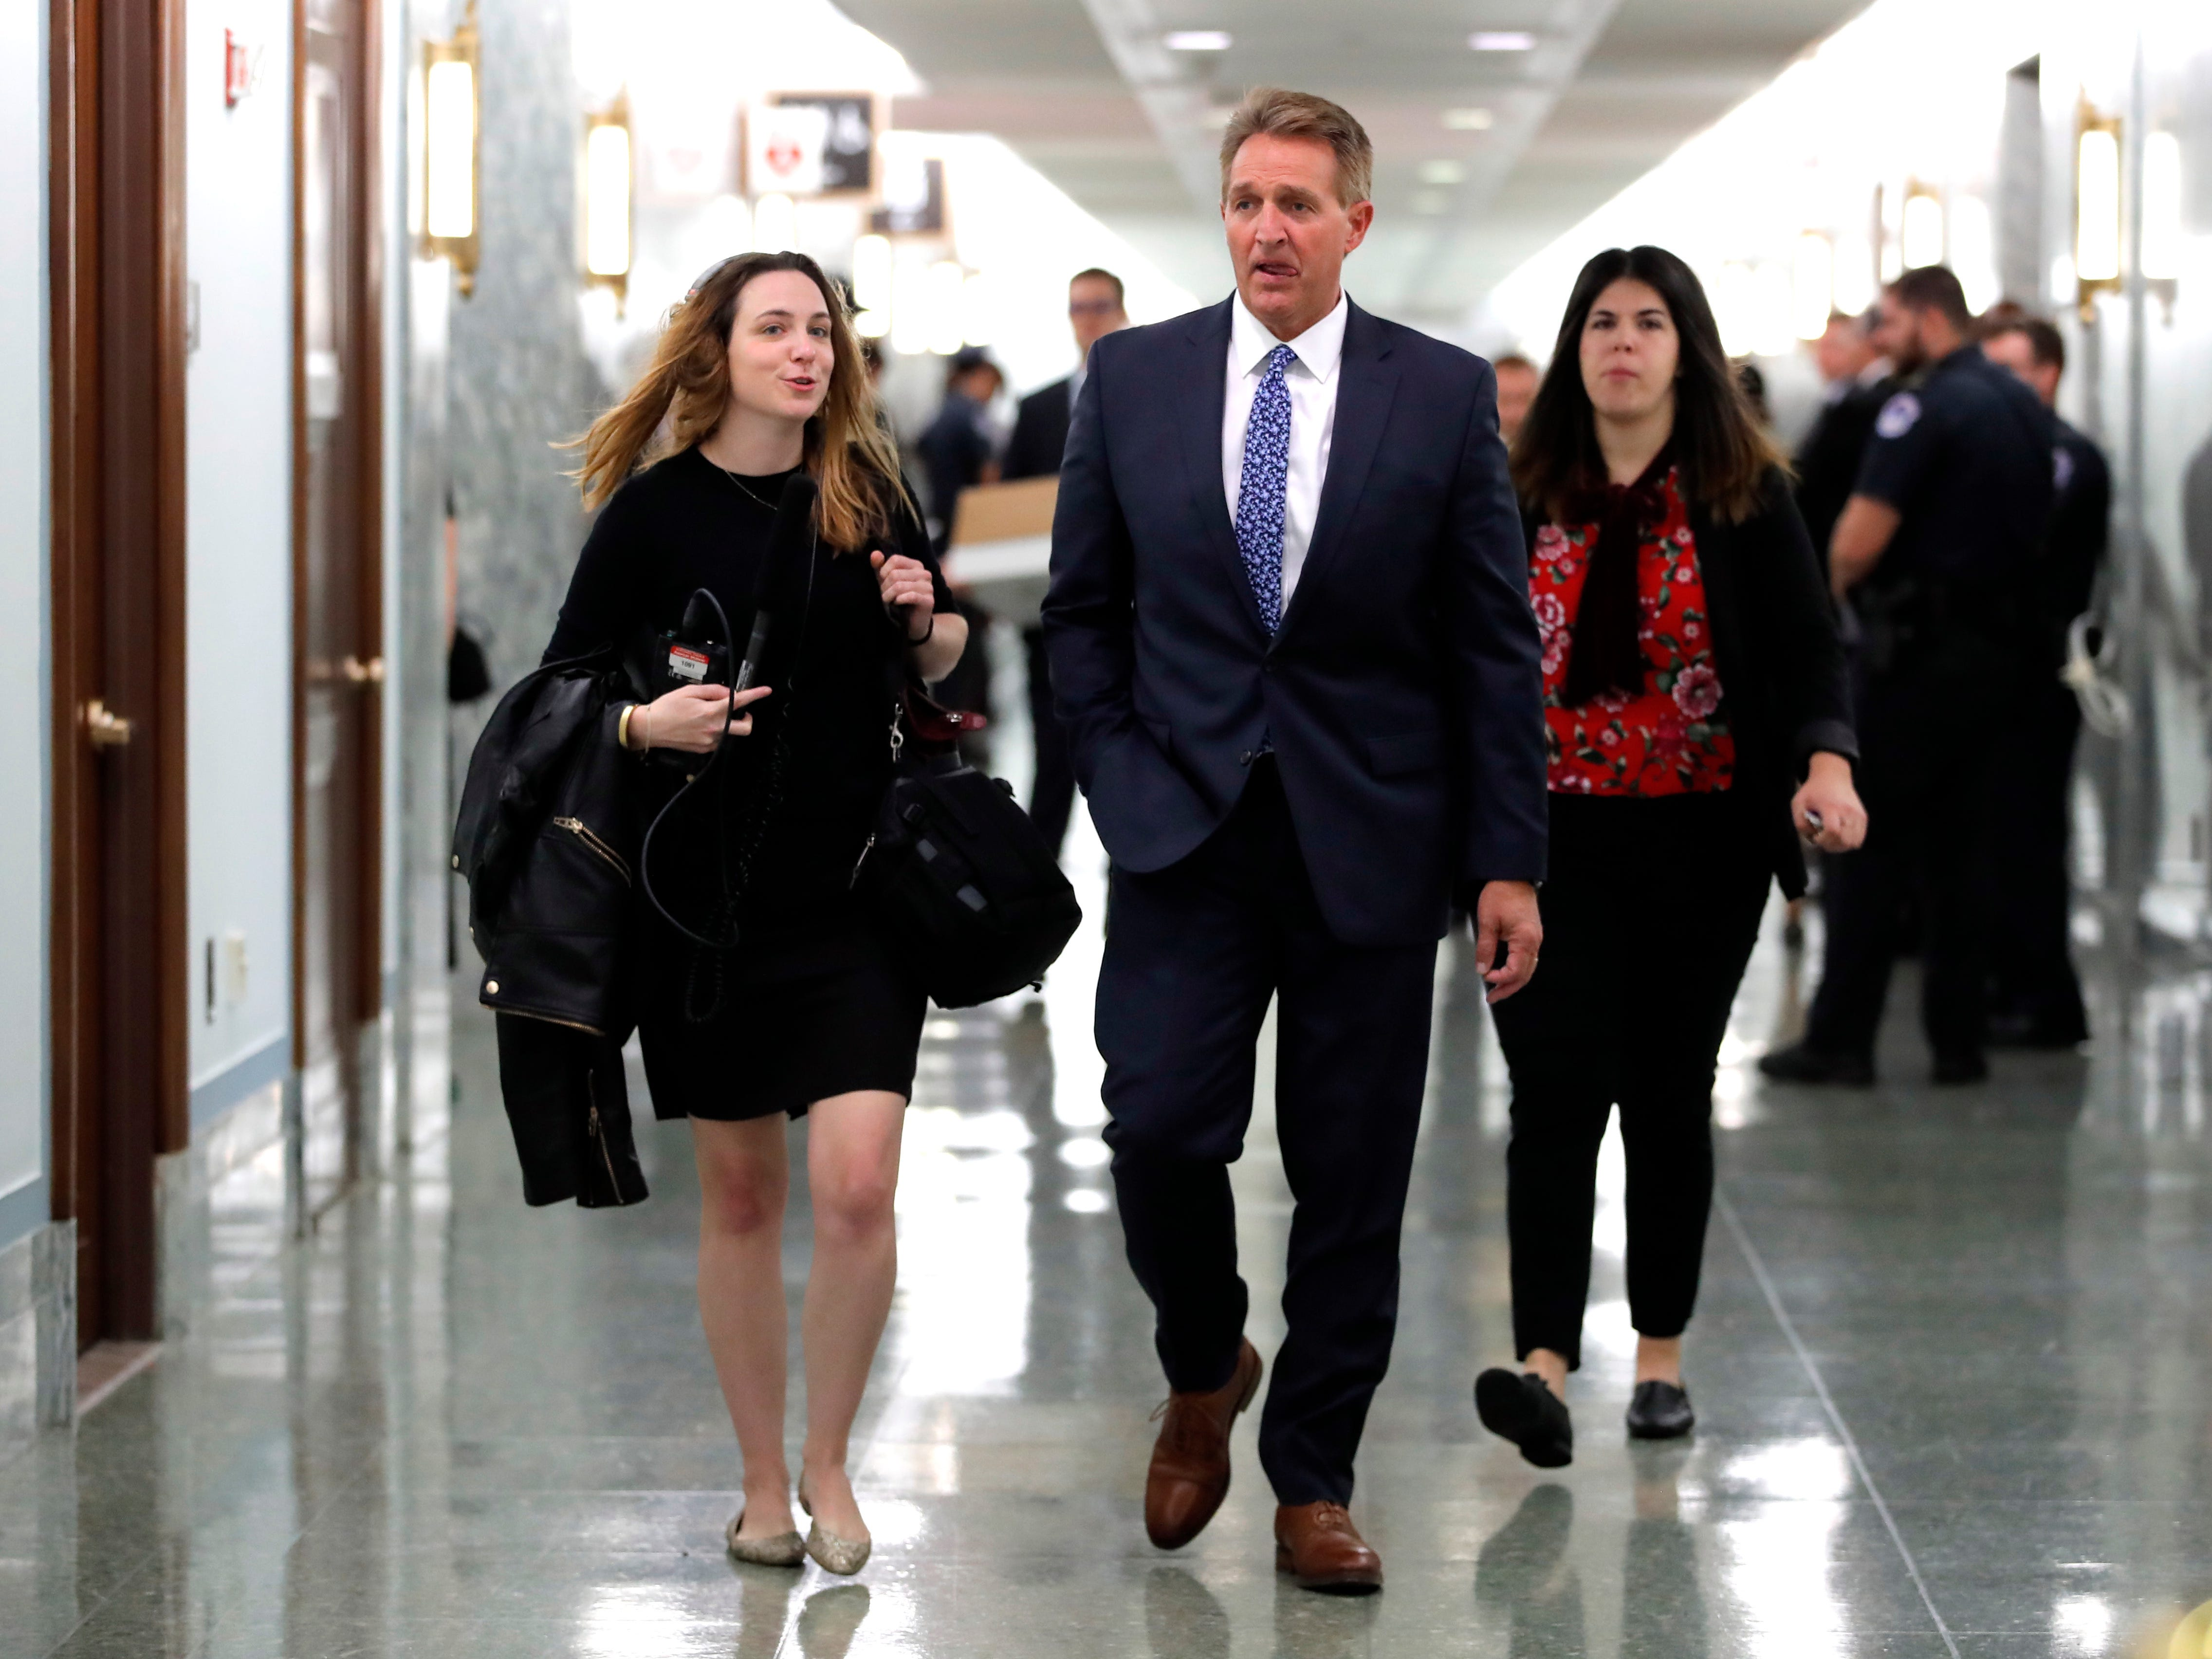 Sen. Jeff Flake, R-Ariz., arrives for the Senate Judiciary hearing on Capitol Hill in Washington, Thursday, Sept. 27, 2018 with Christine Blasey Ford and Supreme Court nominee Brett Kavanaugh.(AP Photo/Carolyn Kaster) ORG XMIT: DCCK403